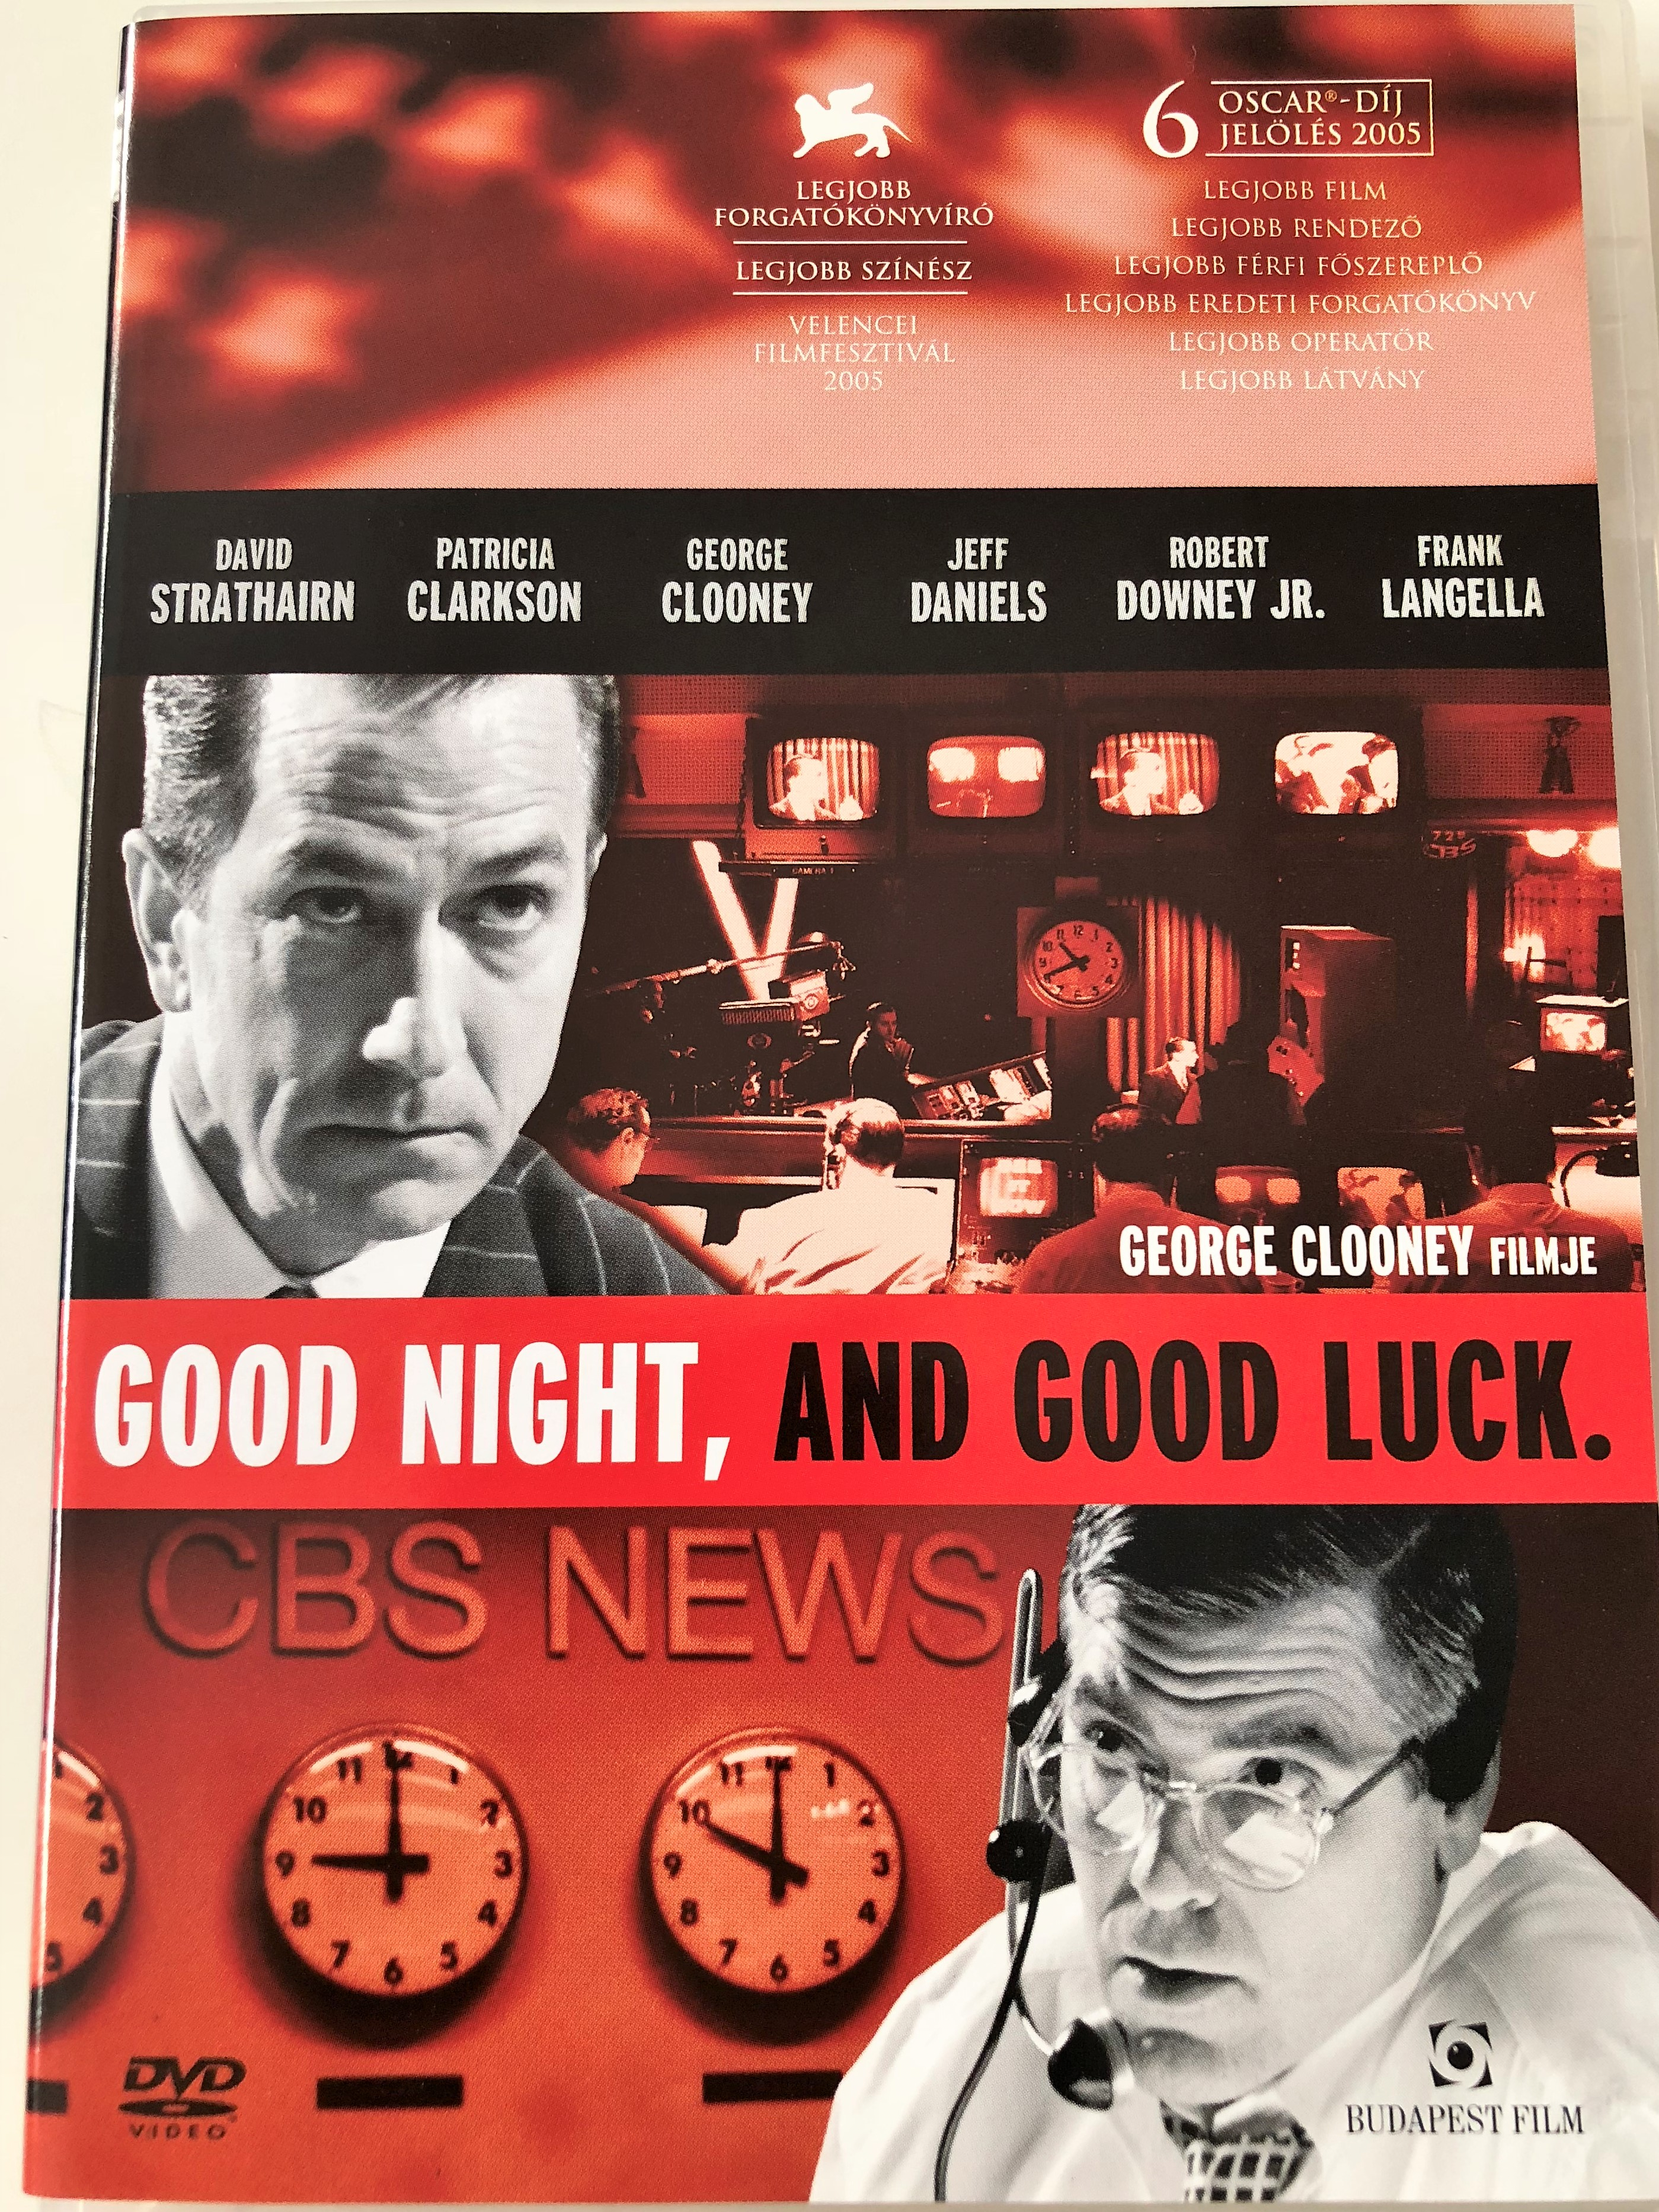 good-night-and-good-luck-dvd-2005-directed-by-george-clooney-starring-david-strathairn-patricia-clarkson-george-clooney-jeff-daniels-robert-downey-jr.-frank-langella-historical-drama-film-1-.jpg